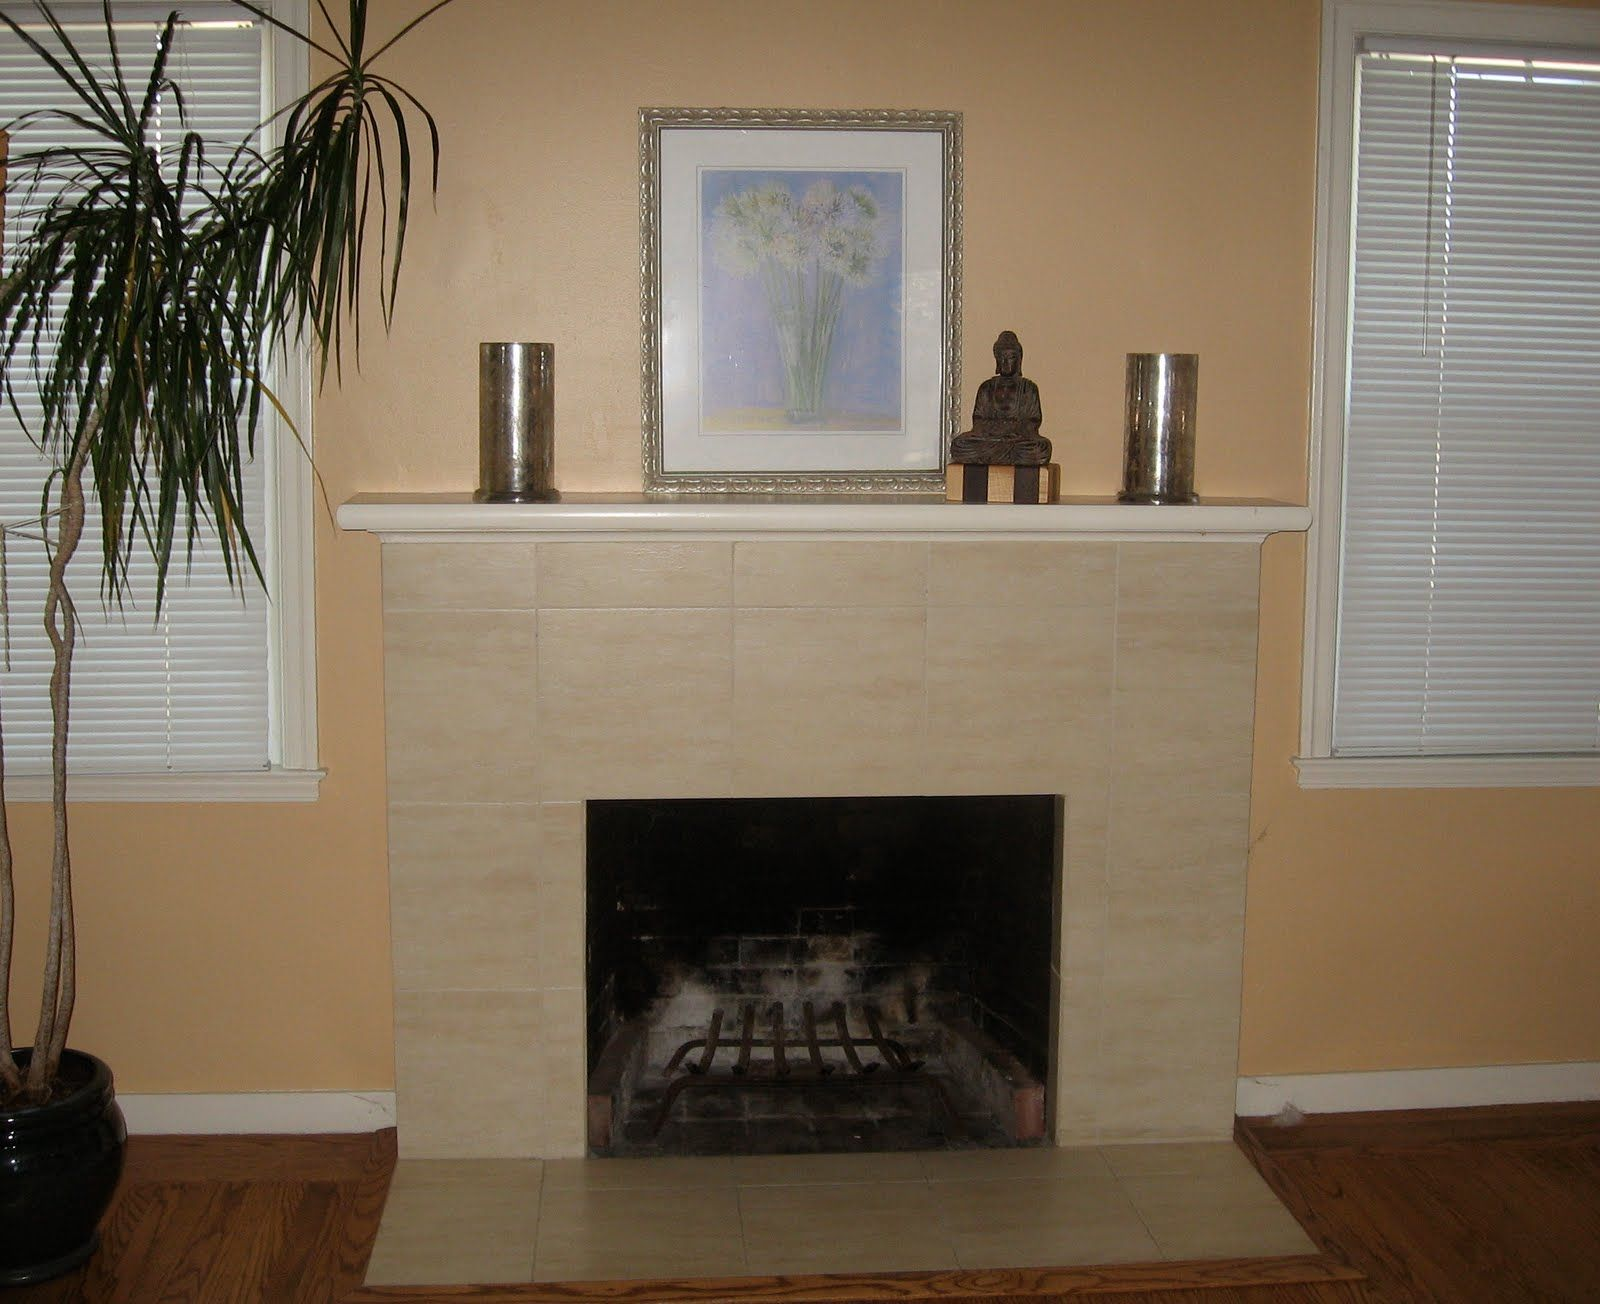 Fireplace Mantels And Surrounds Ideas Classy Amazing Gas Fireplace Mantel Ideas To Warm Your Winter Time Decorating Design